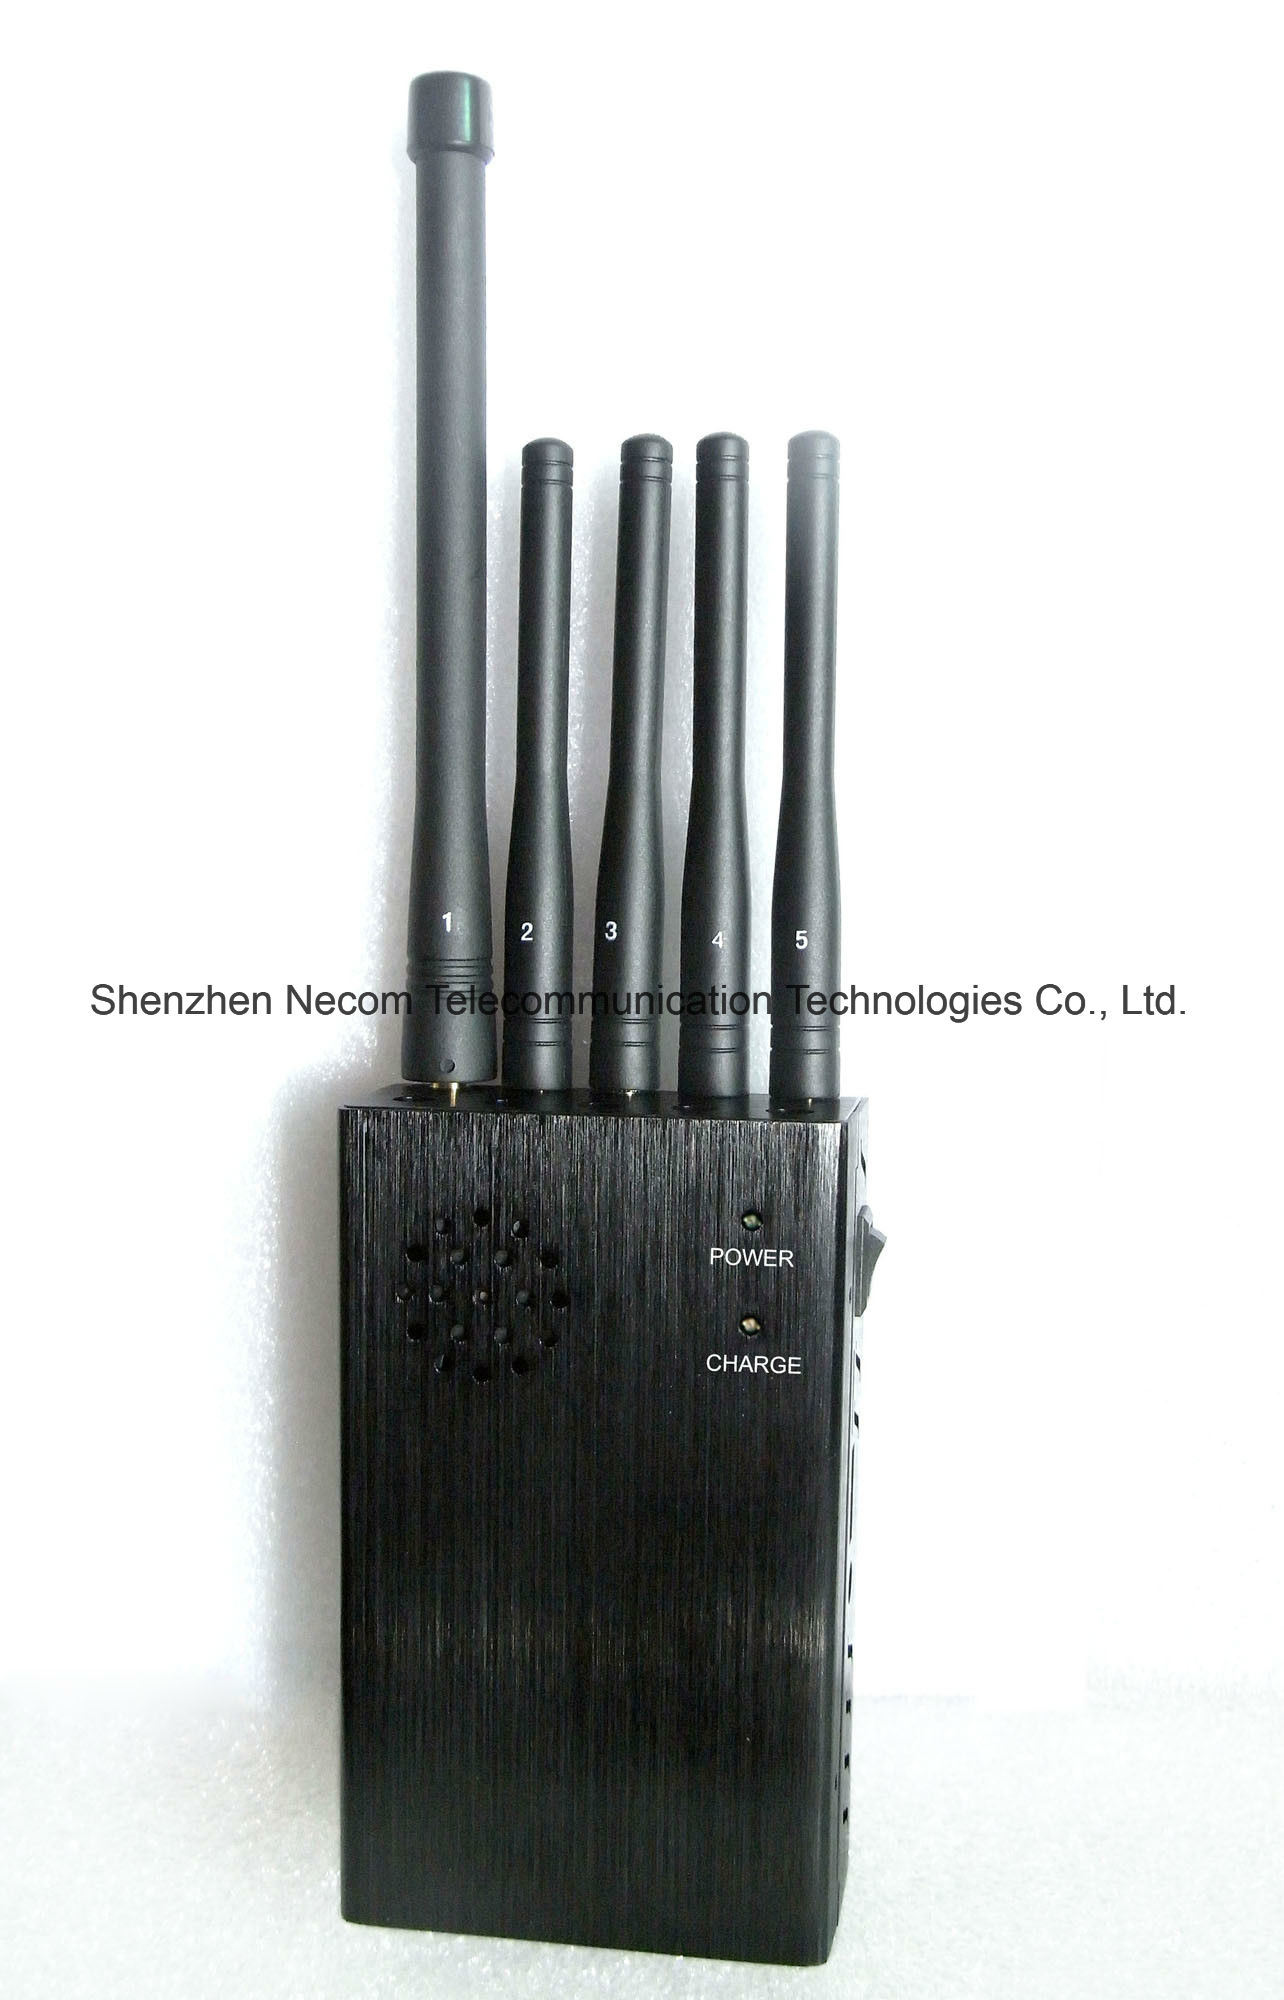 signal jammers factory farming - China 5 Antennas Handheld WiFi GPS Cell Phone Jammer, 5-Band Portable WiFi Bluetooth Wireless Video Cell Phone Jammer - China Portable Cellphone Jammer, GSM Jammer